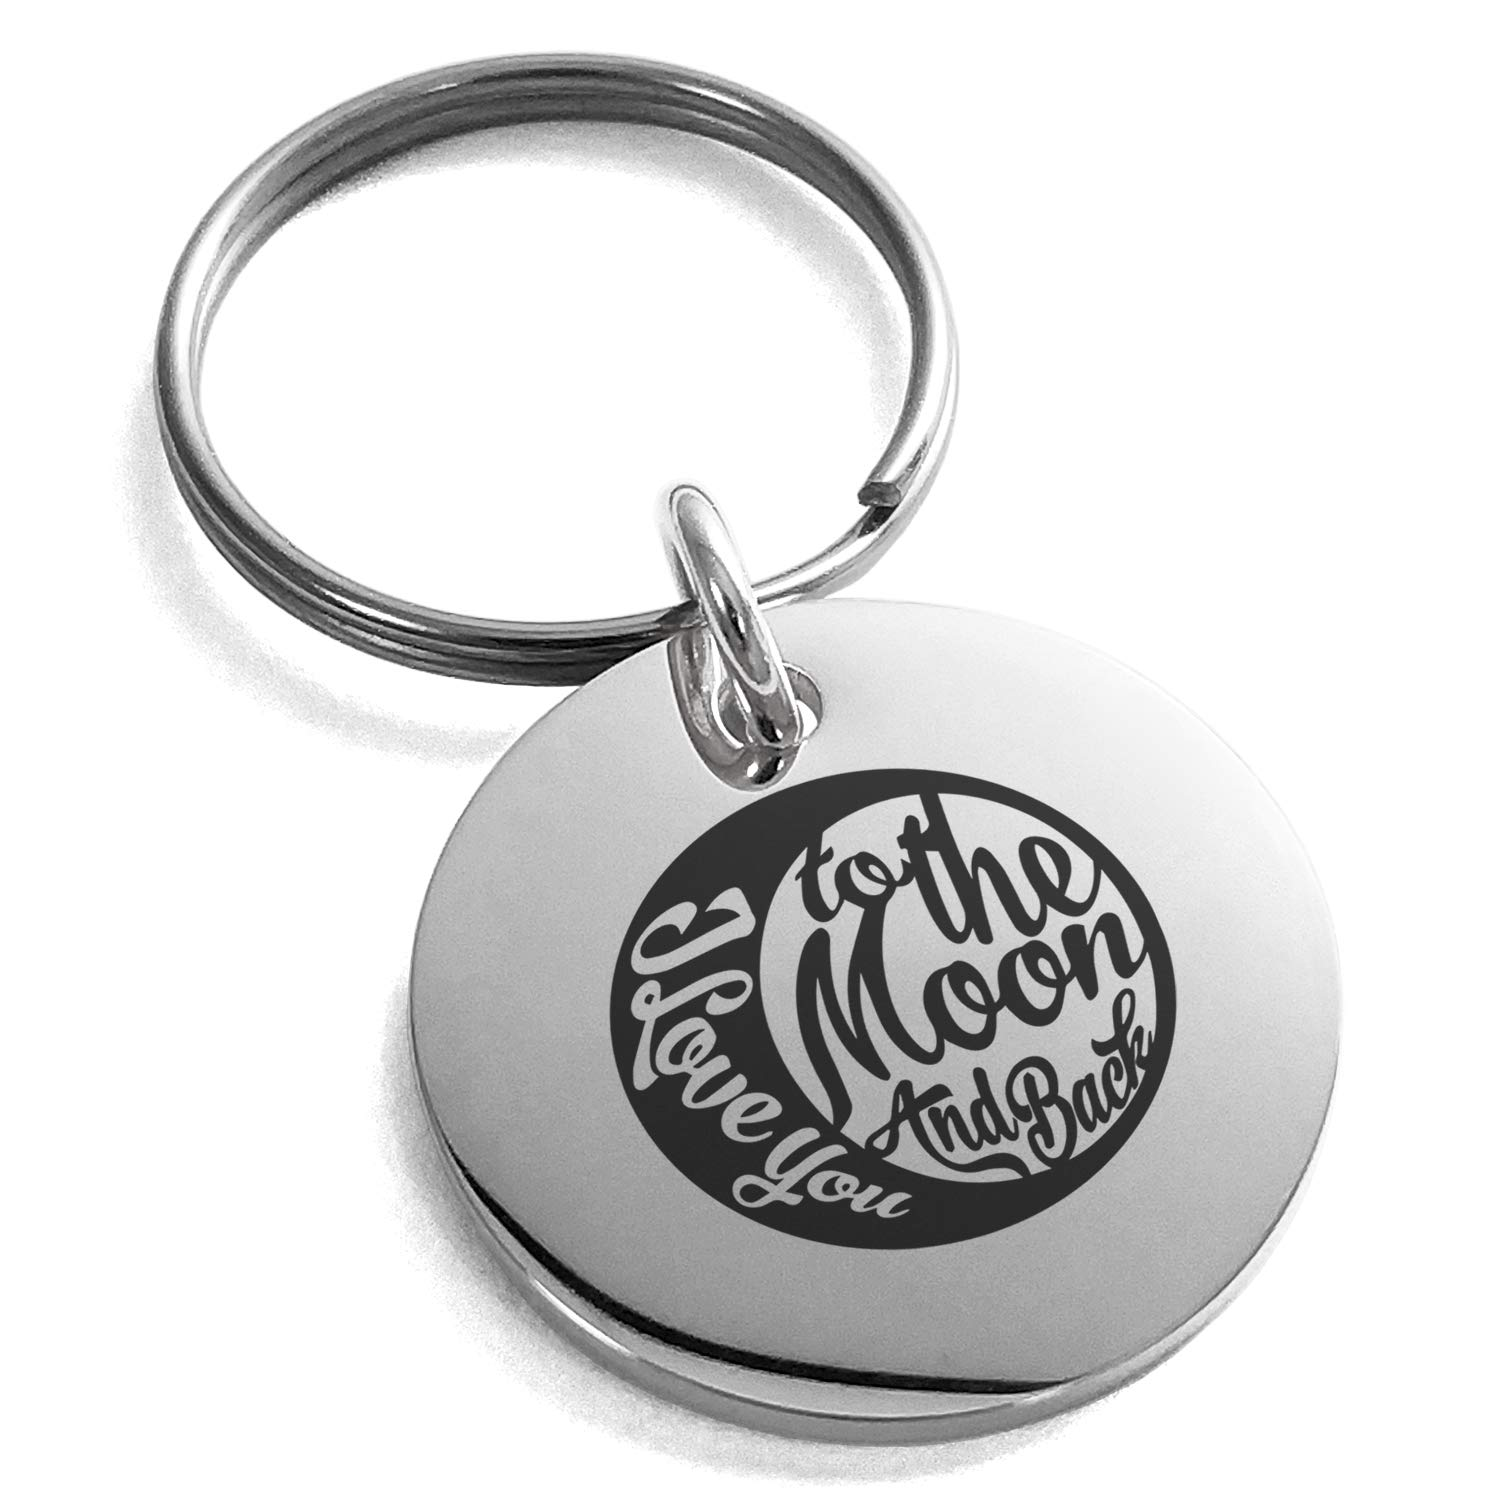 Tioneer Stainless Steel Retro I Love You to The Moon and Back Engraved Small Medallion Circle Charm Keychain Keyring